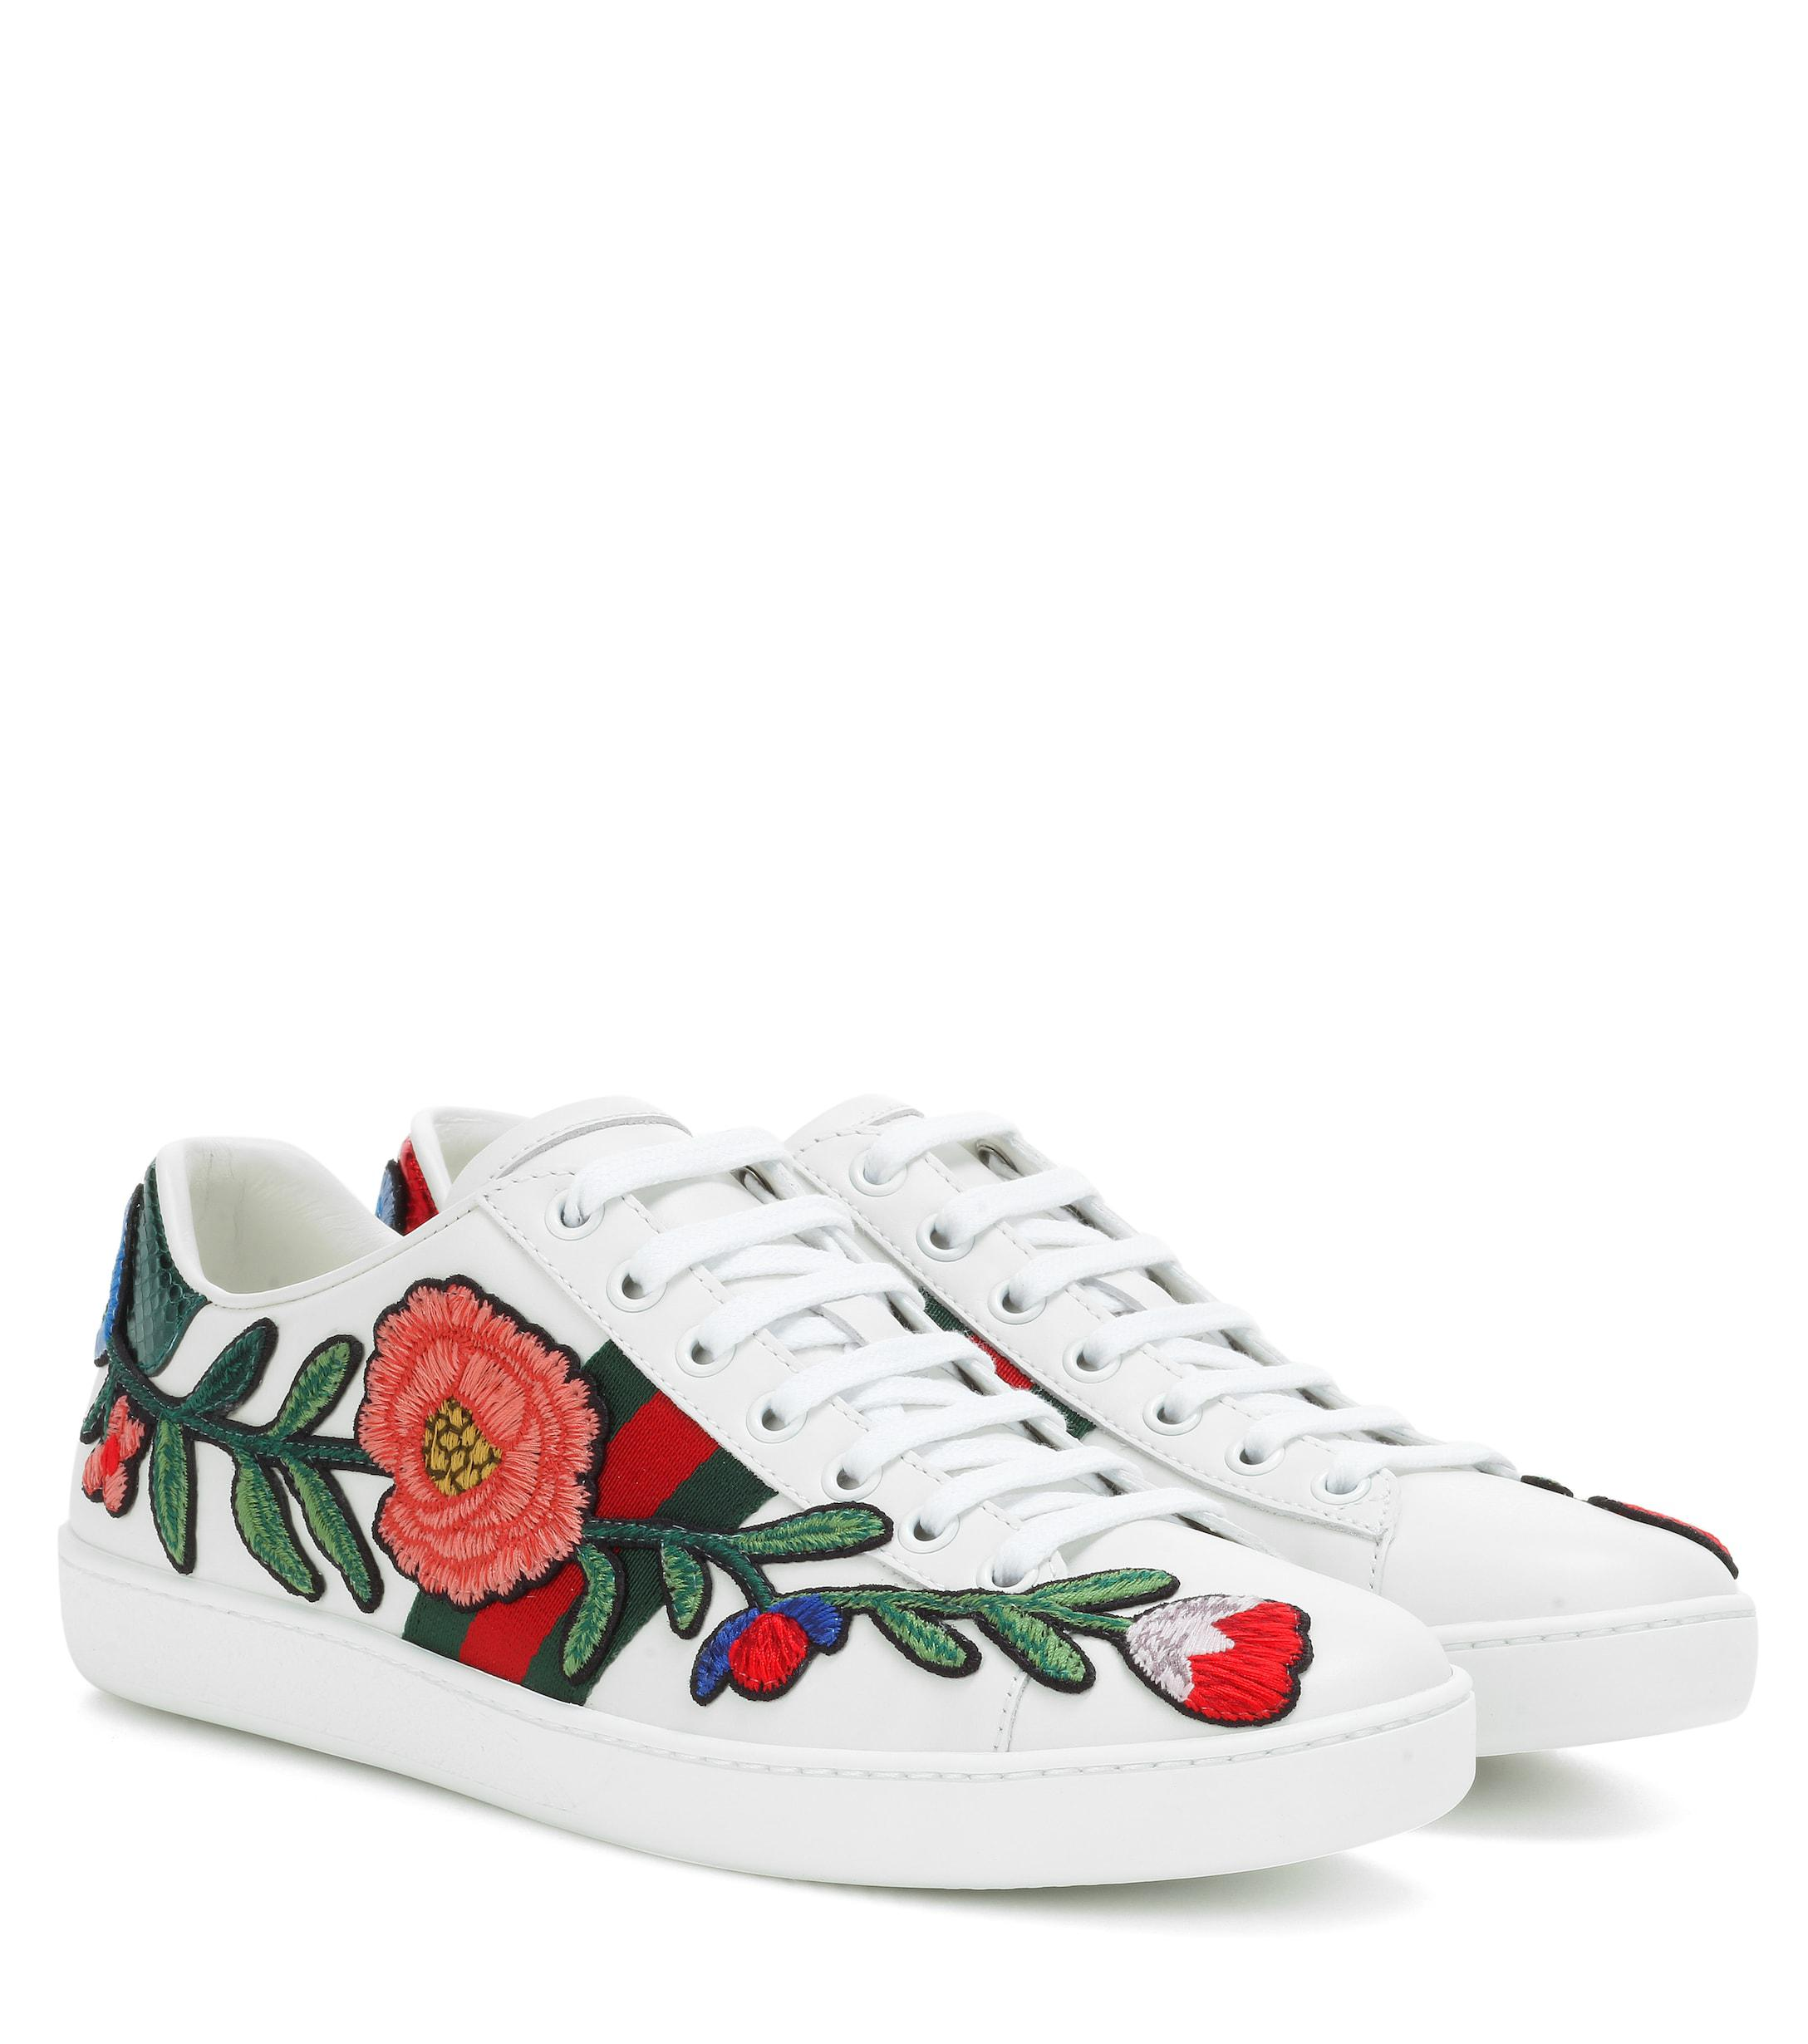 4abdc8bcfe4b Gucci. Women s White Ace Leather Sneakers.  725 From Mytheresa